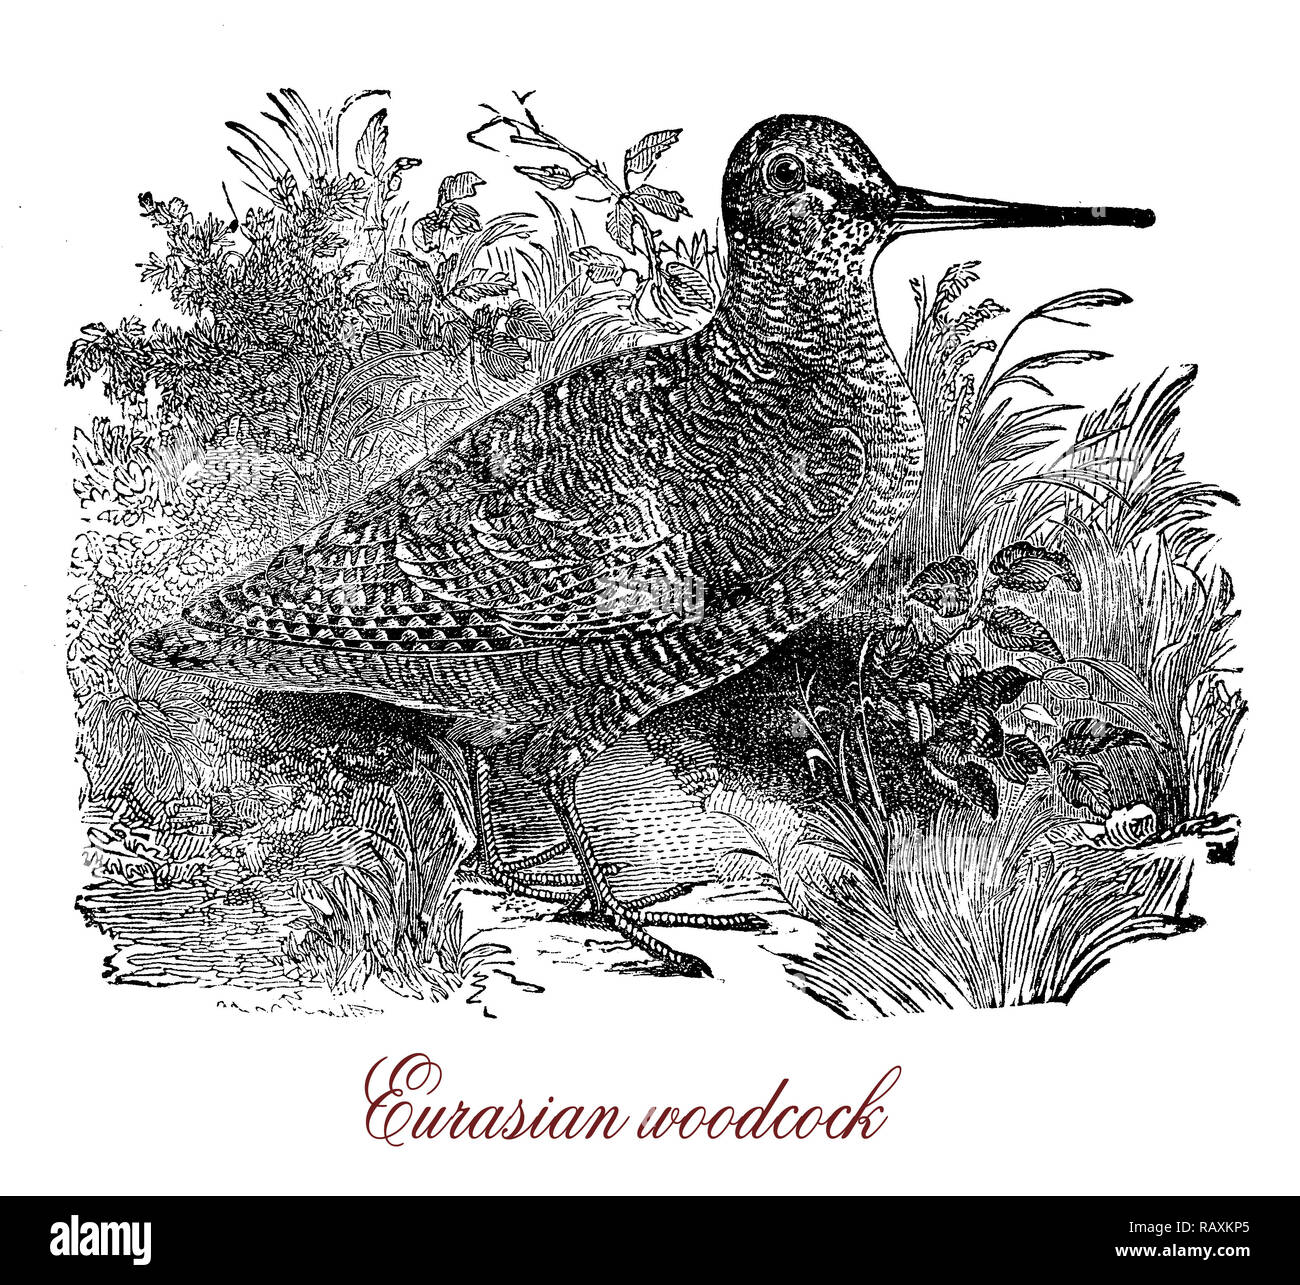 Vintage engraving of Eurasian woodcock, small wading bird native to Eurasia with long sensitive bill and cryptic camouflage to suit with its habitat - Stock Image